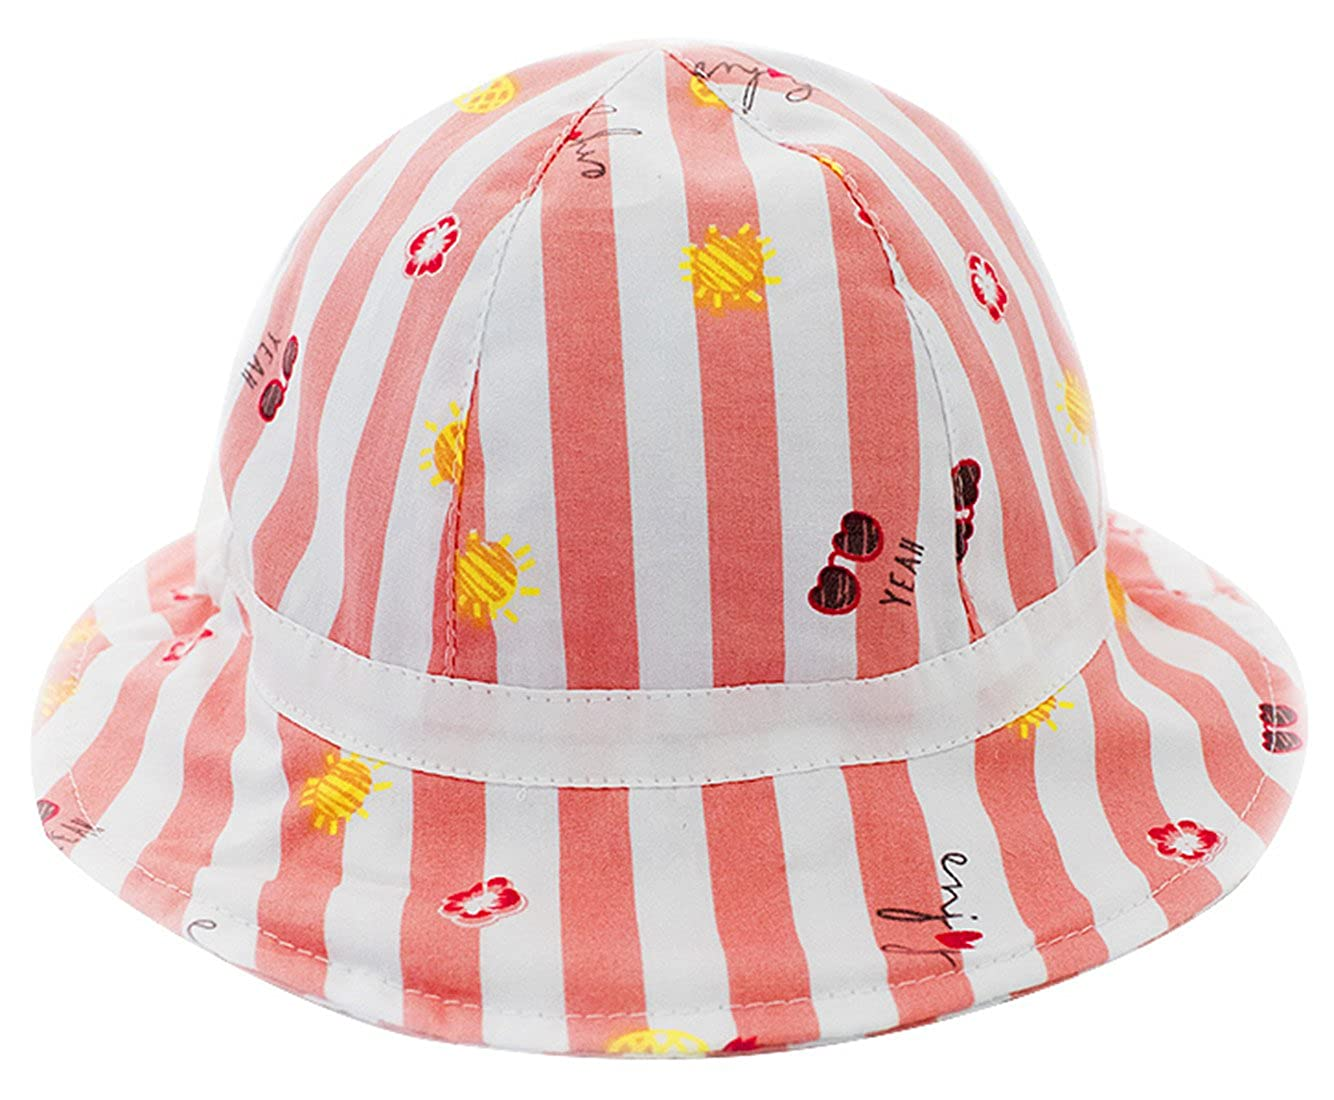 54be29f3f86 Amazon.com  Kids Beach Cotton Hat Stripes Sun Protection Bucket Hat  Children s 50+ UPF Sun Protective Wide Brim Bucket Hat for 2-4T  Clothing